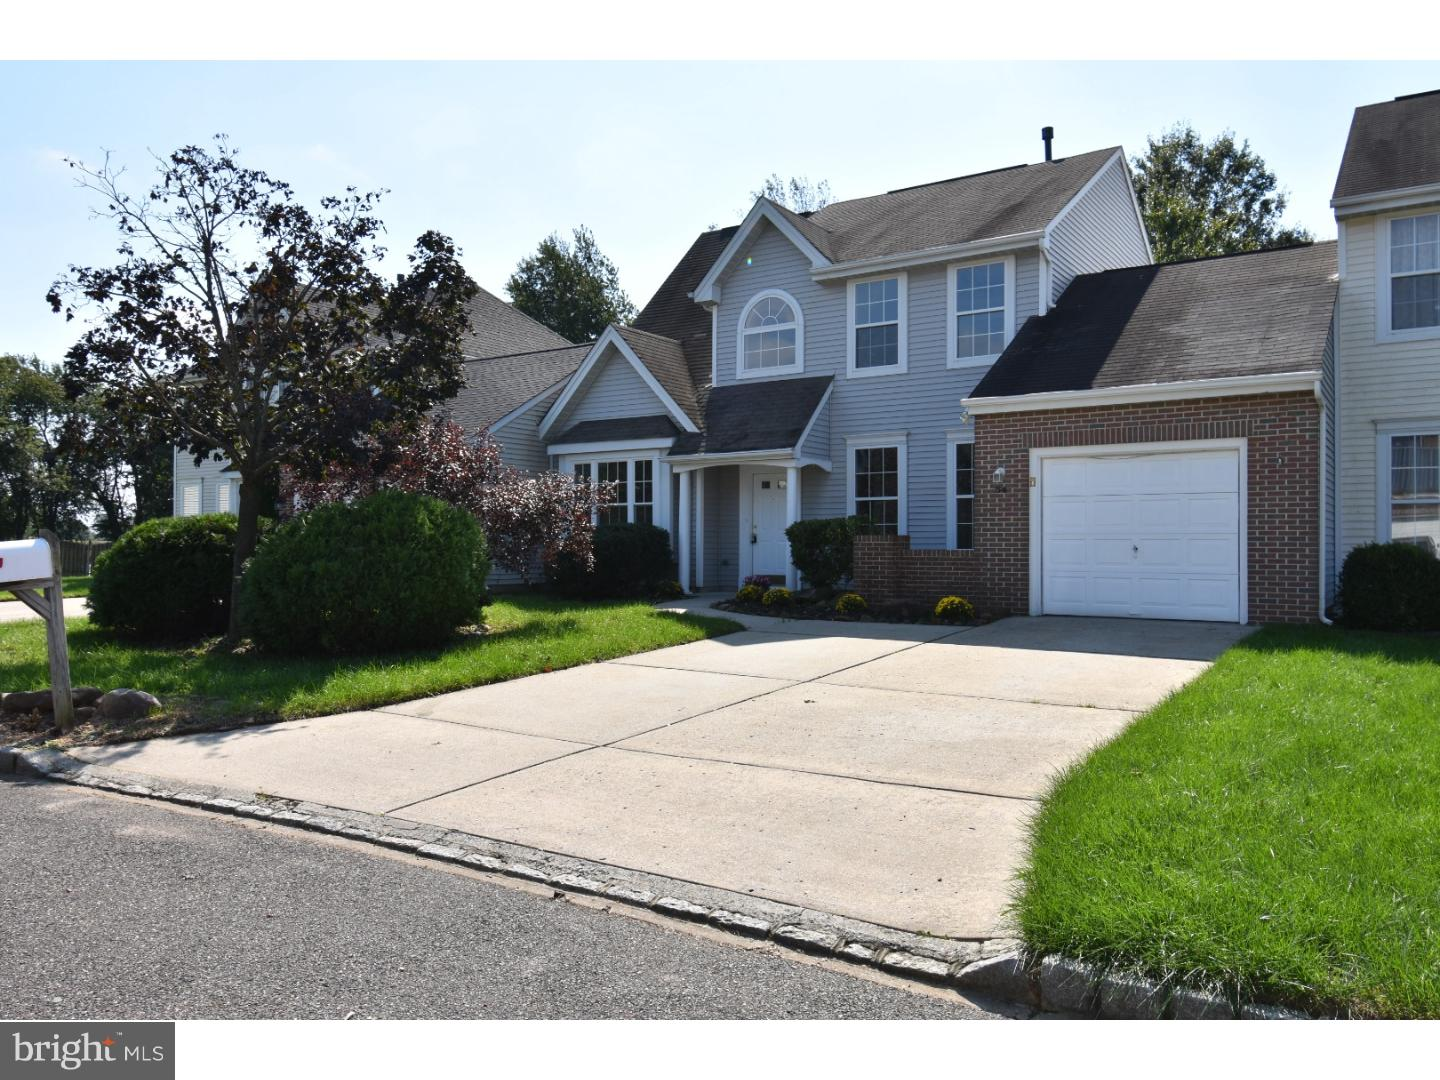 Single Family Home for Sale at 54 FIELDCREST Drive Westampton, New Jersey 08060 United States